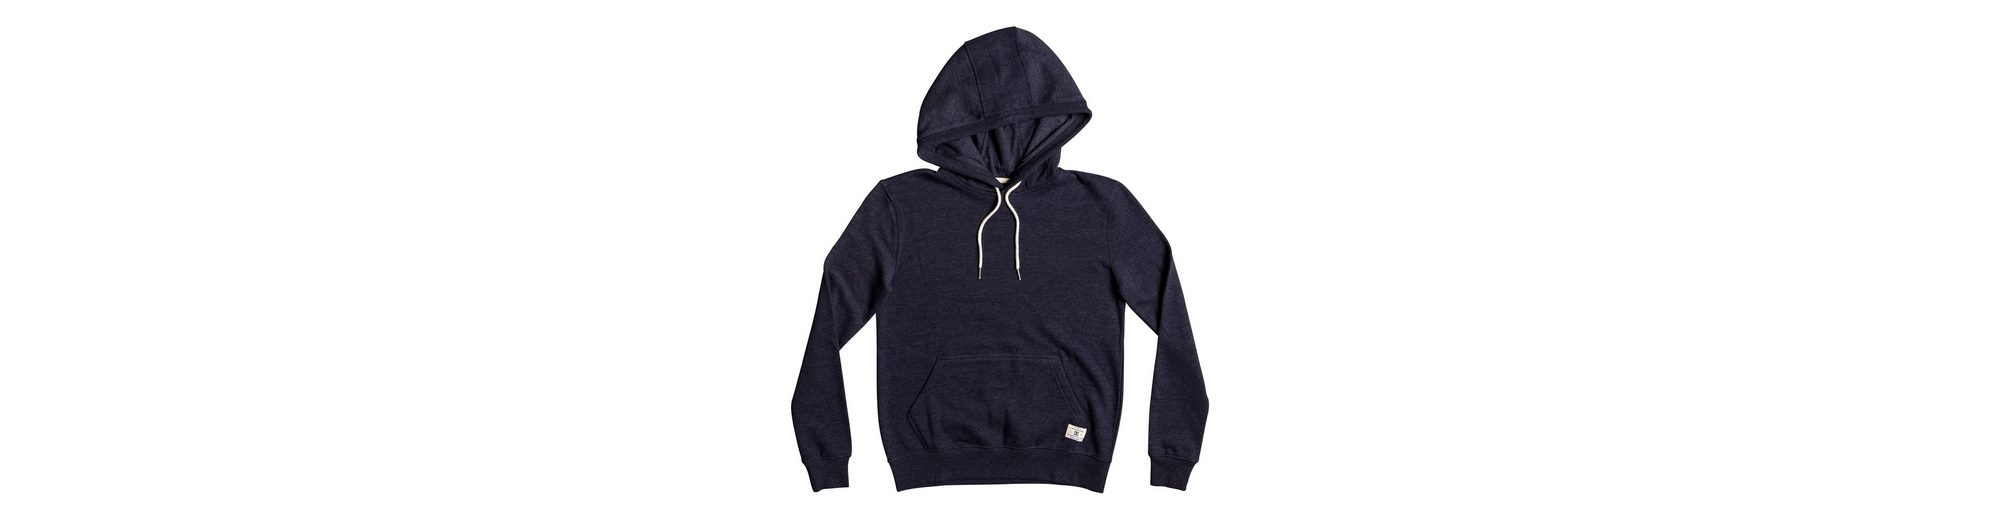 DC Shoes Hoodie Rebel Star Modisch Rabatt Nicekicks Neuankömmling v8YVQYzcK